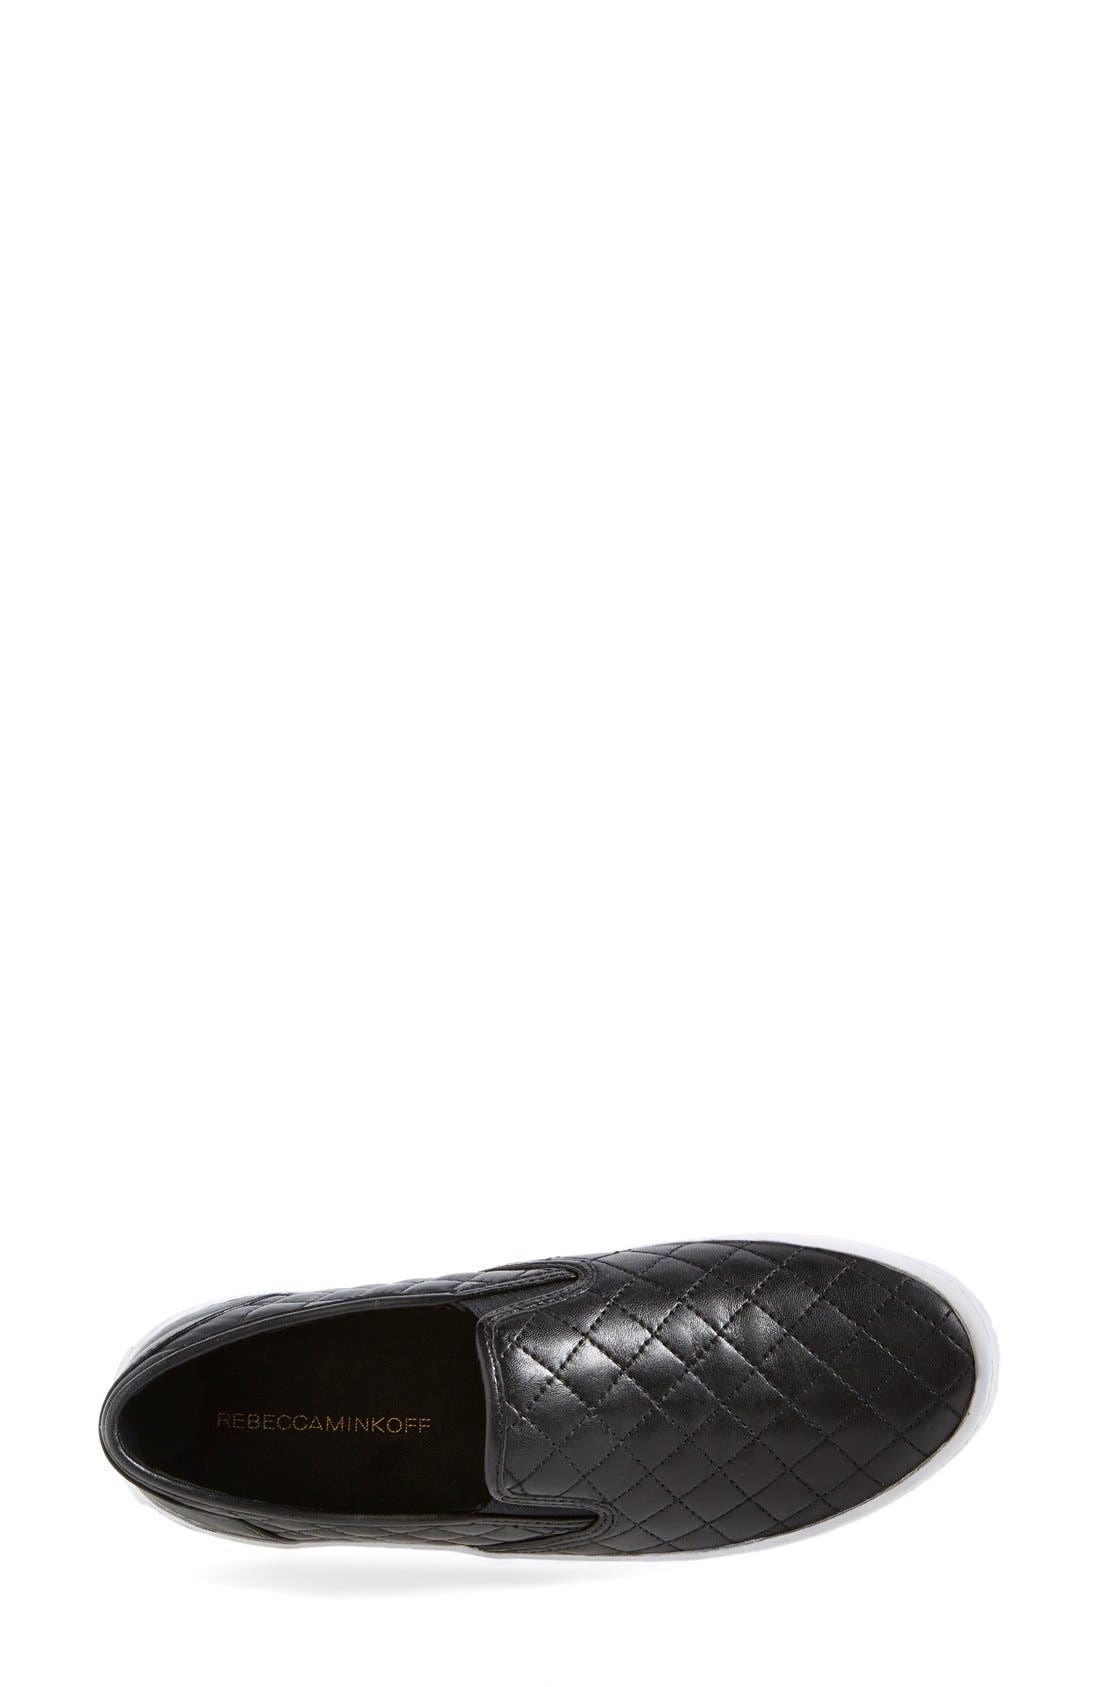 Alternate Image 3  - Rebecca Minkoff 'Sal' Slip-On Leather Sneaker (Women)